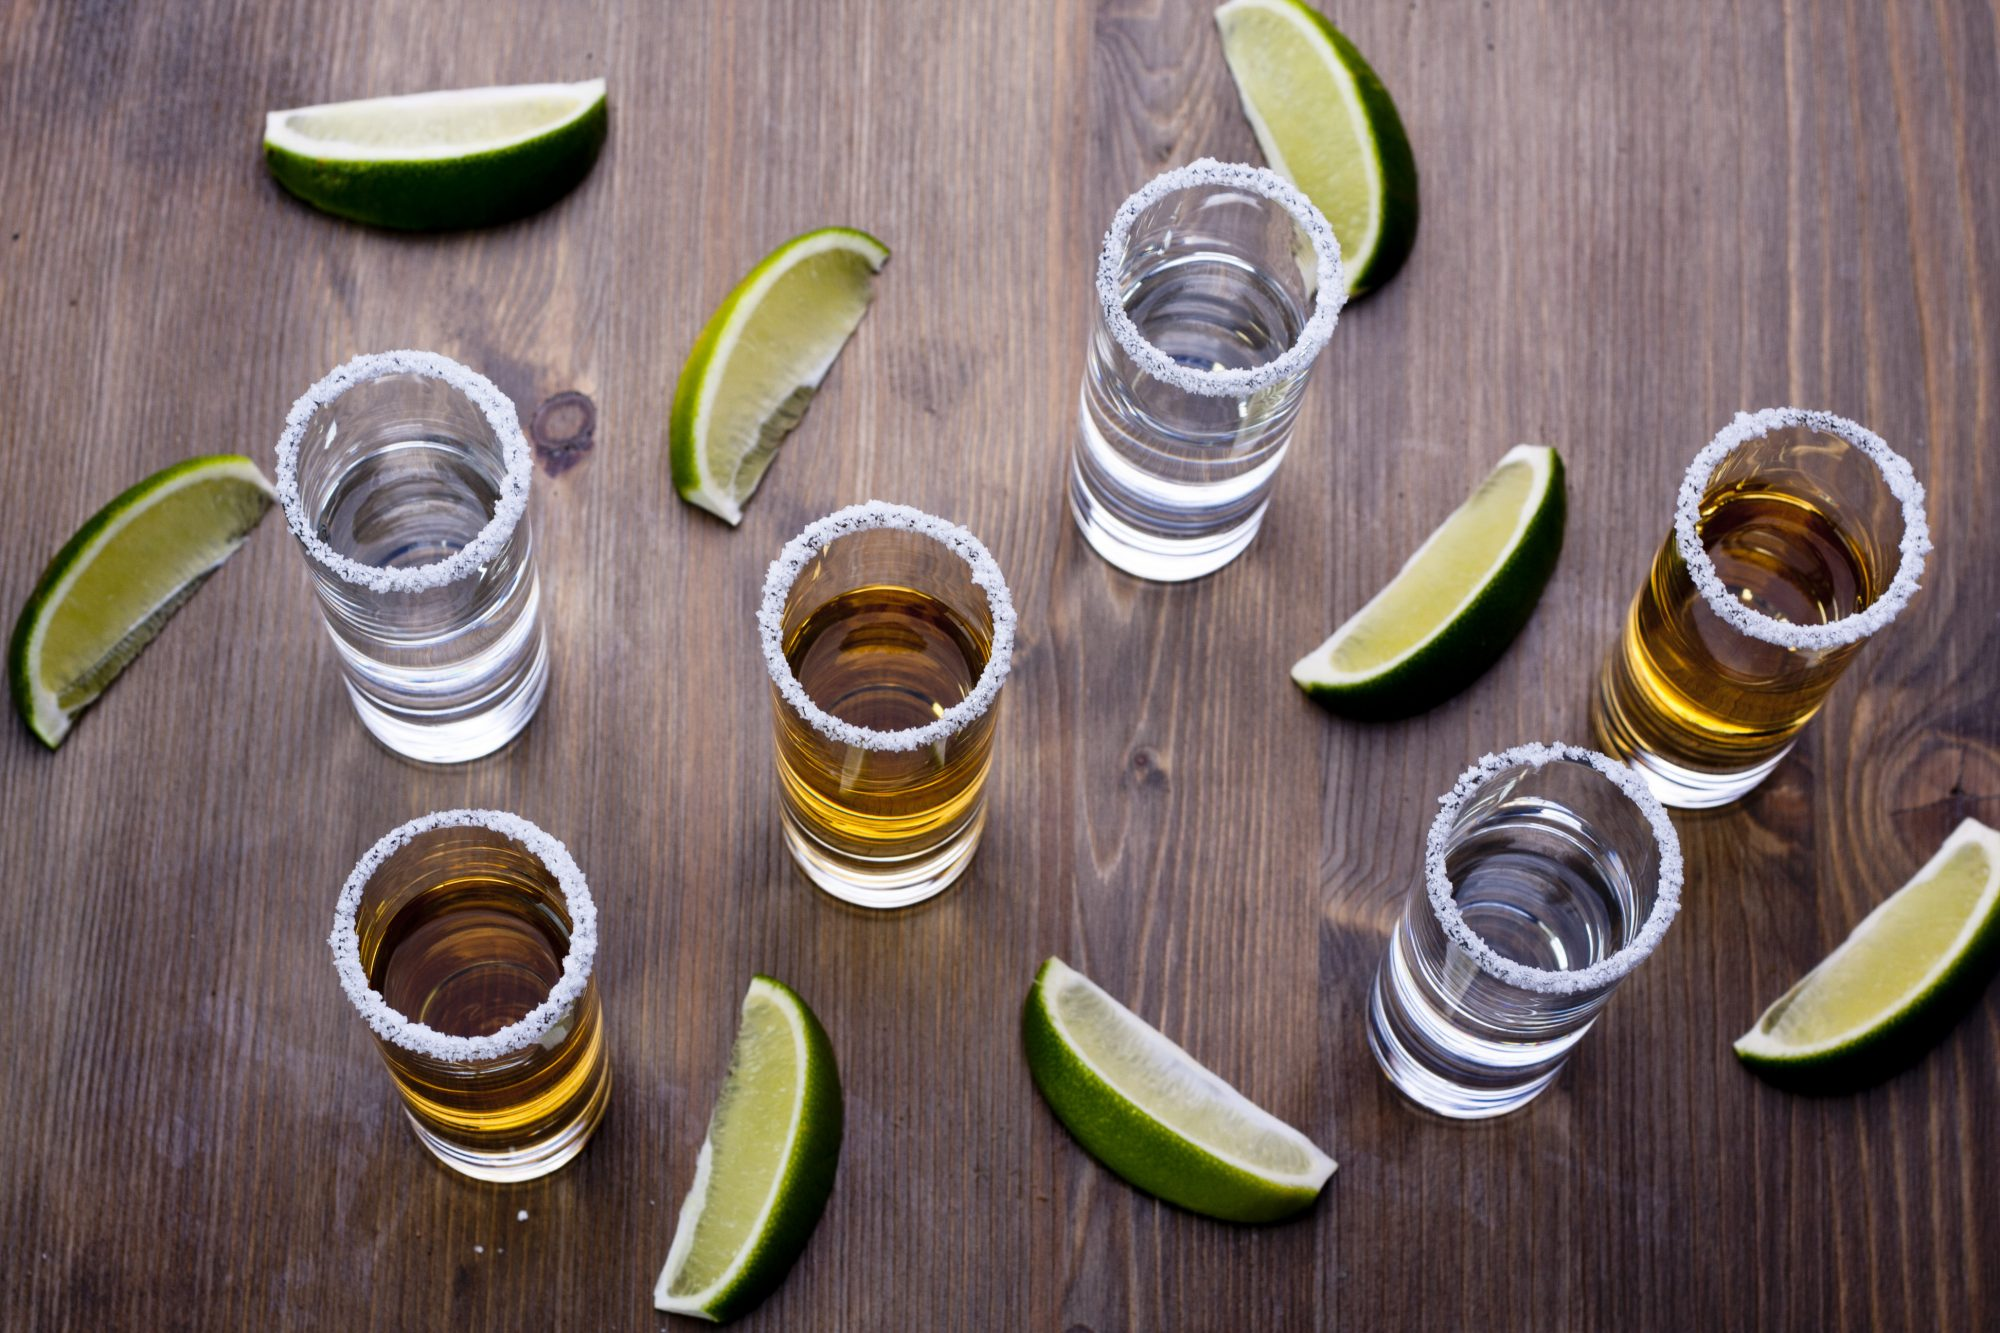 What's the Difference Between Gold and Silver Tequilas—And Which Should I Drink?